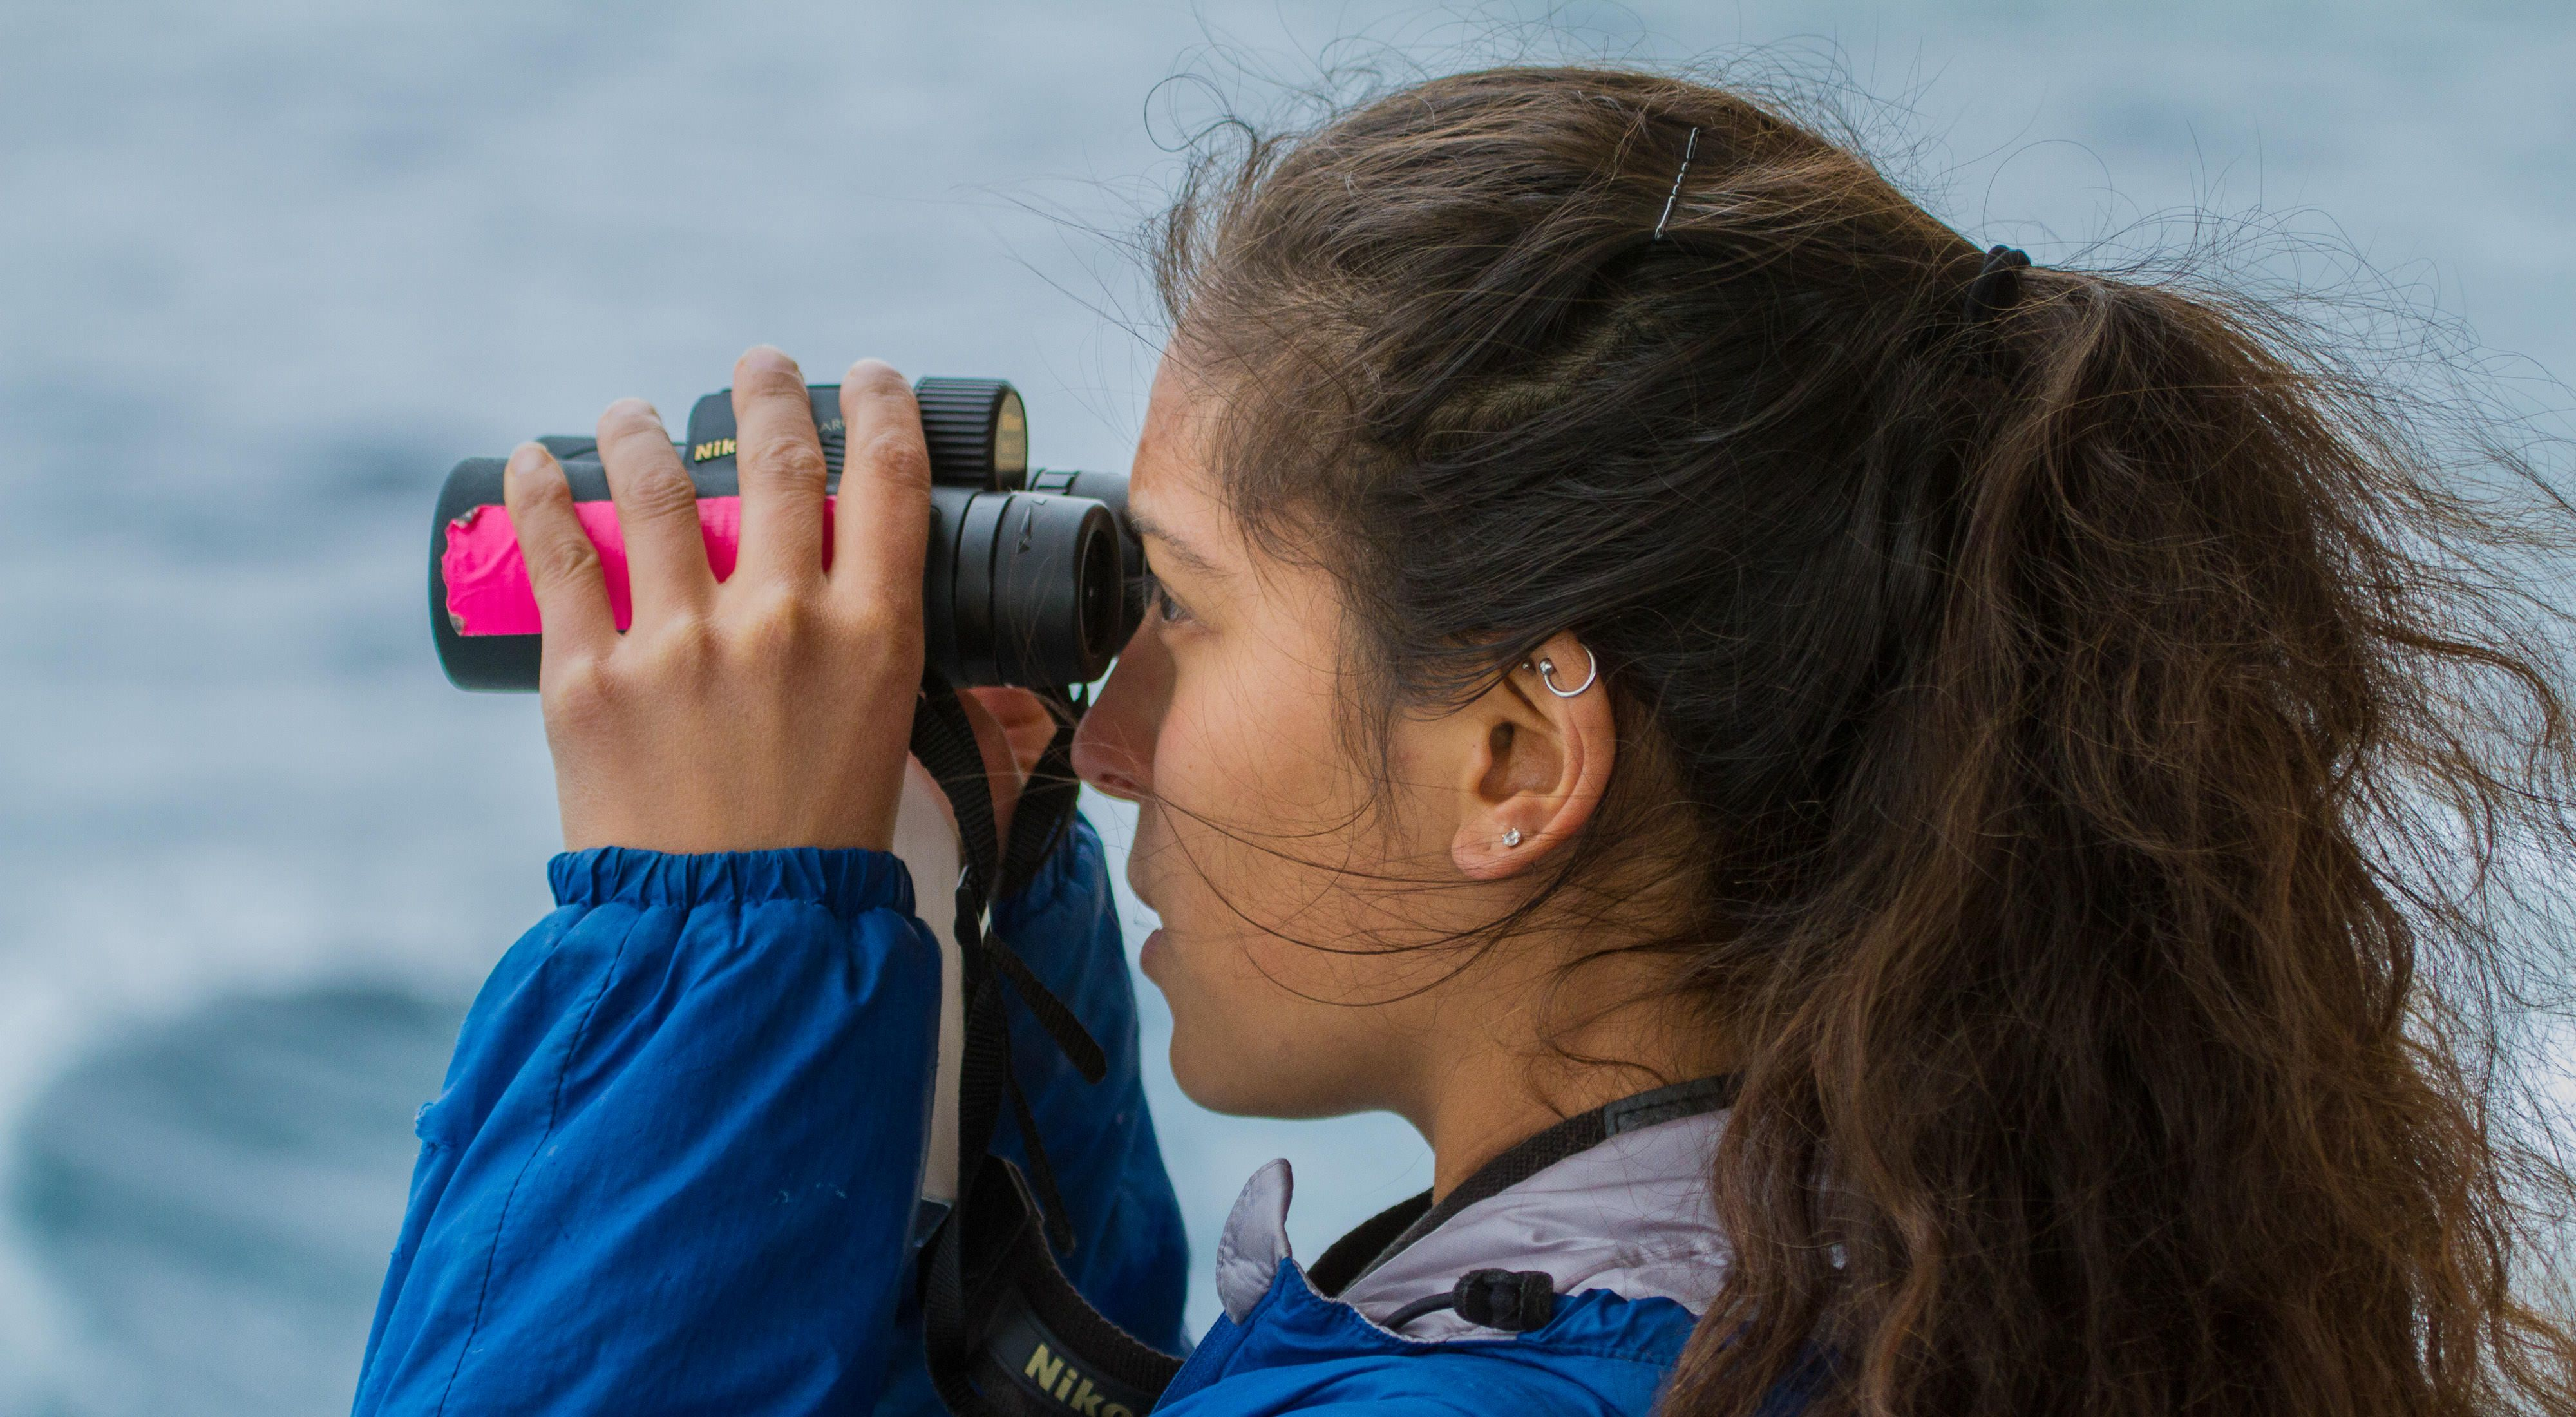 Scientists surveying for seabirds